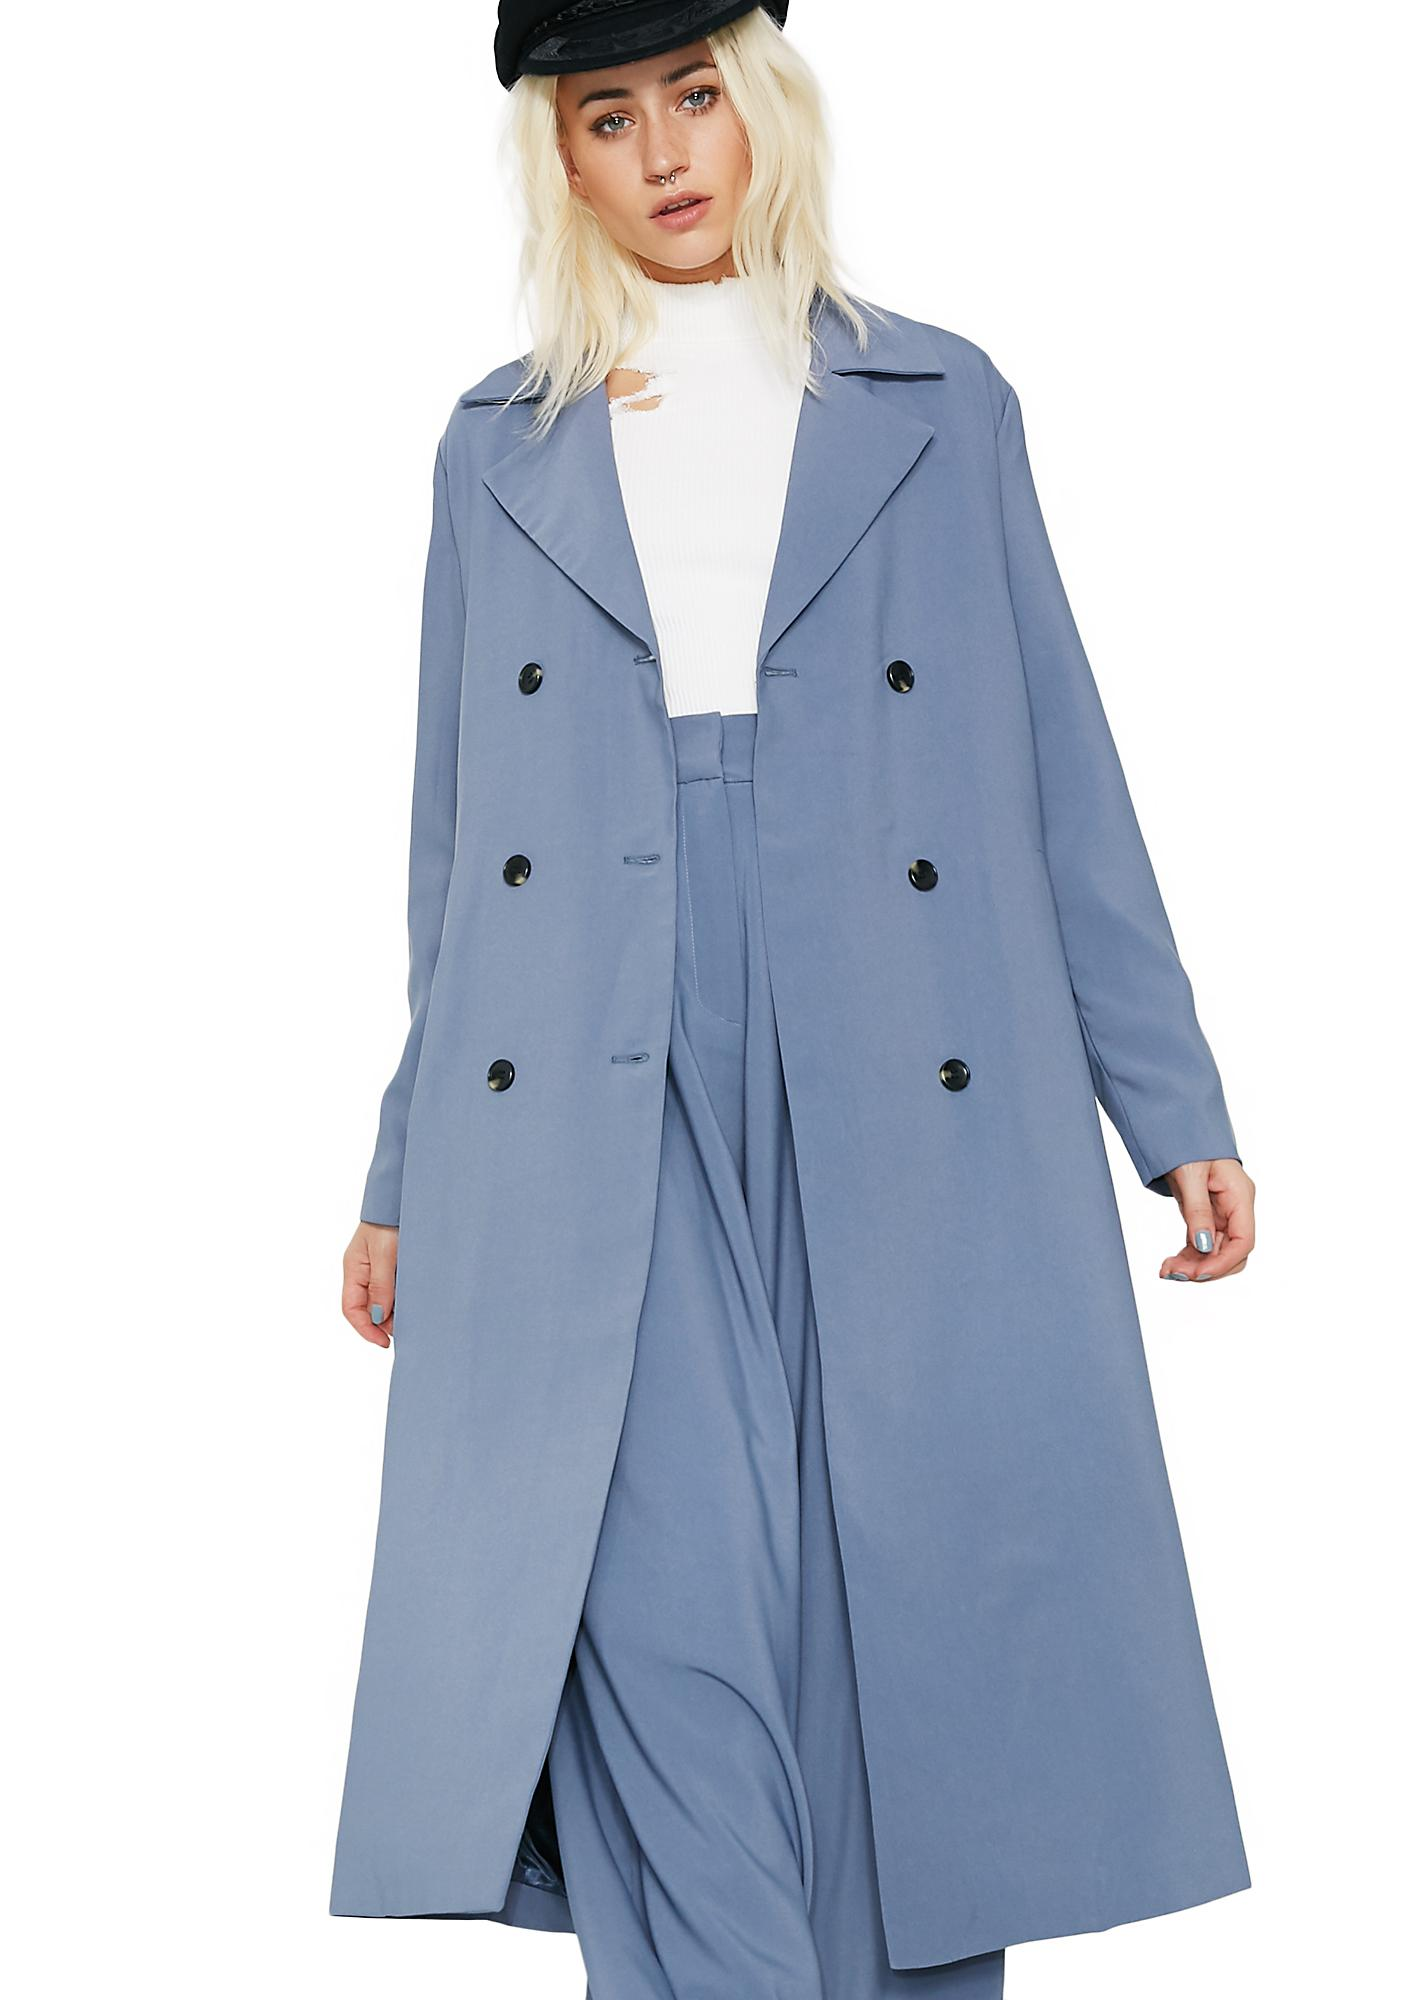 Melania chose a navy blue trench coat with white trim that hit just below her knees for the event. She also donned matching stiletto heels. The trench coat featured a tie .